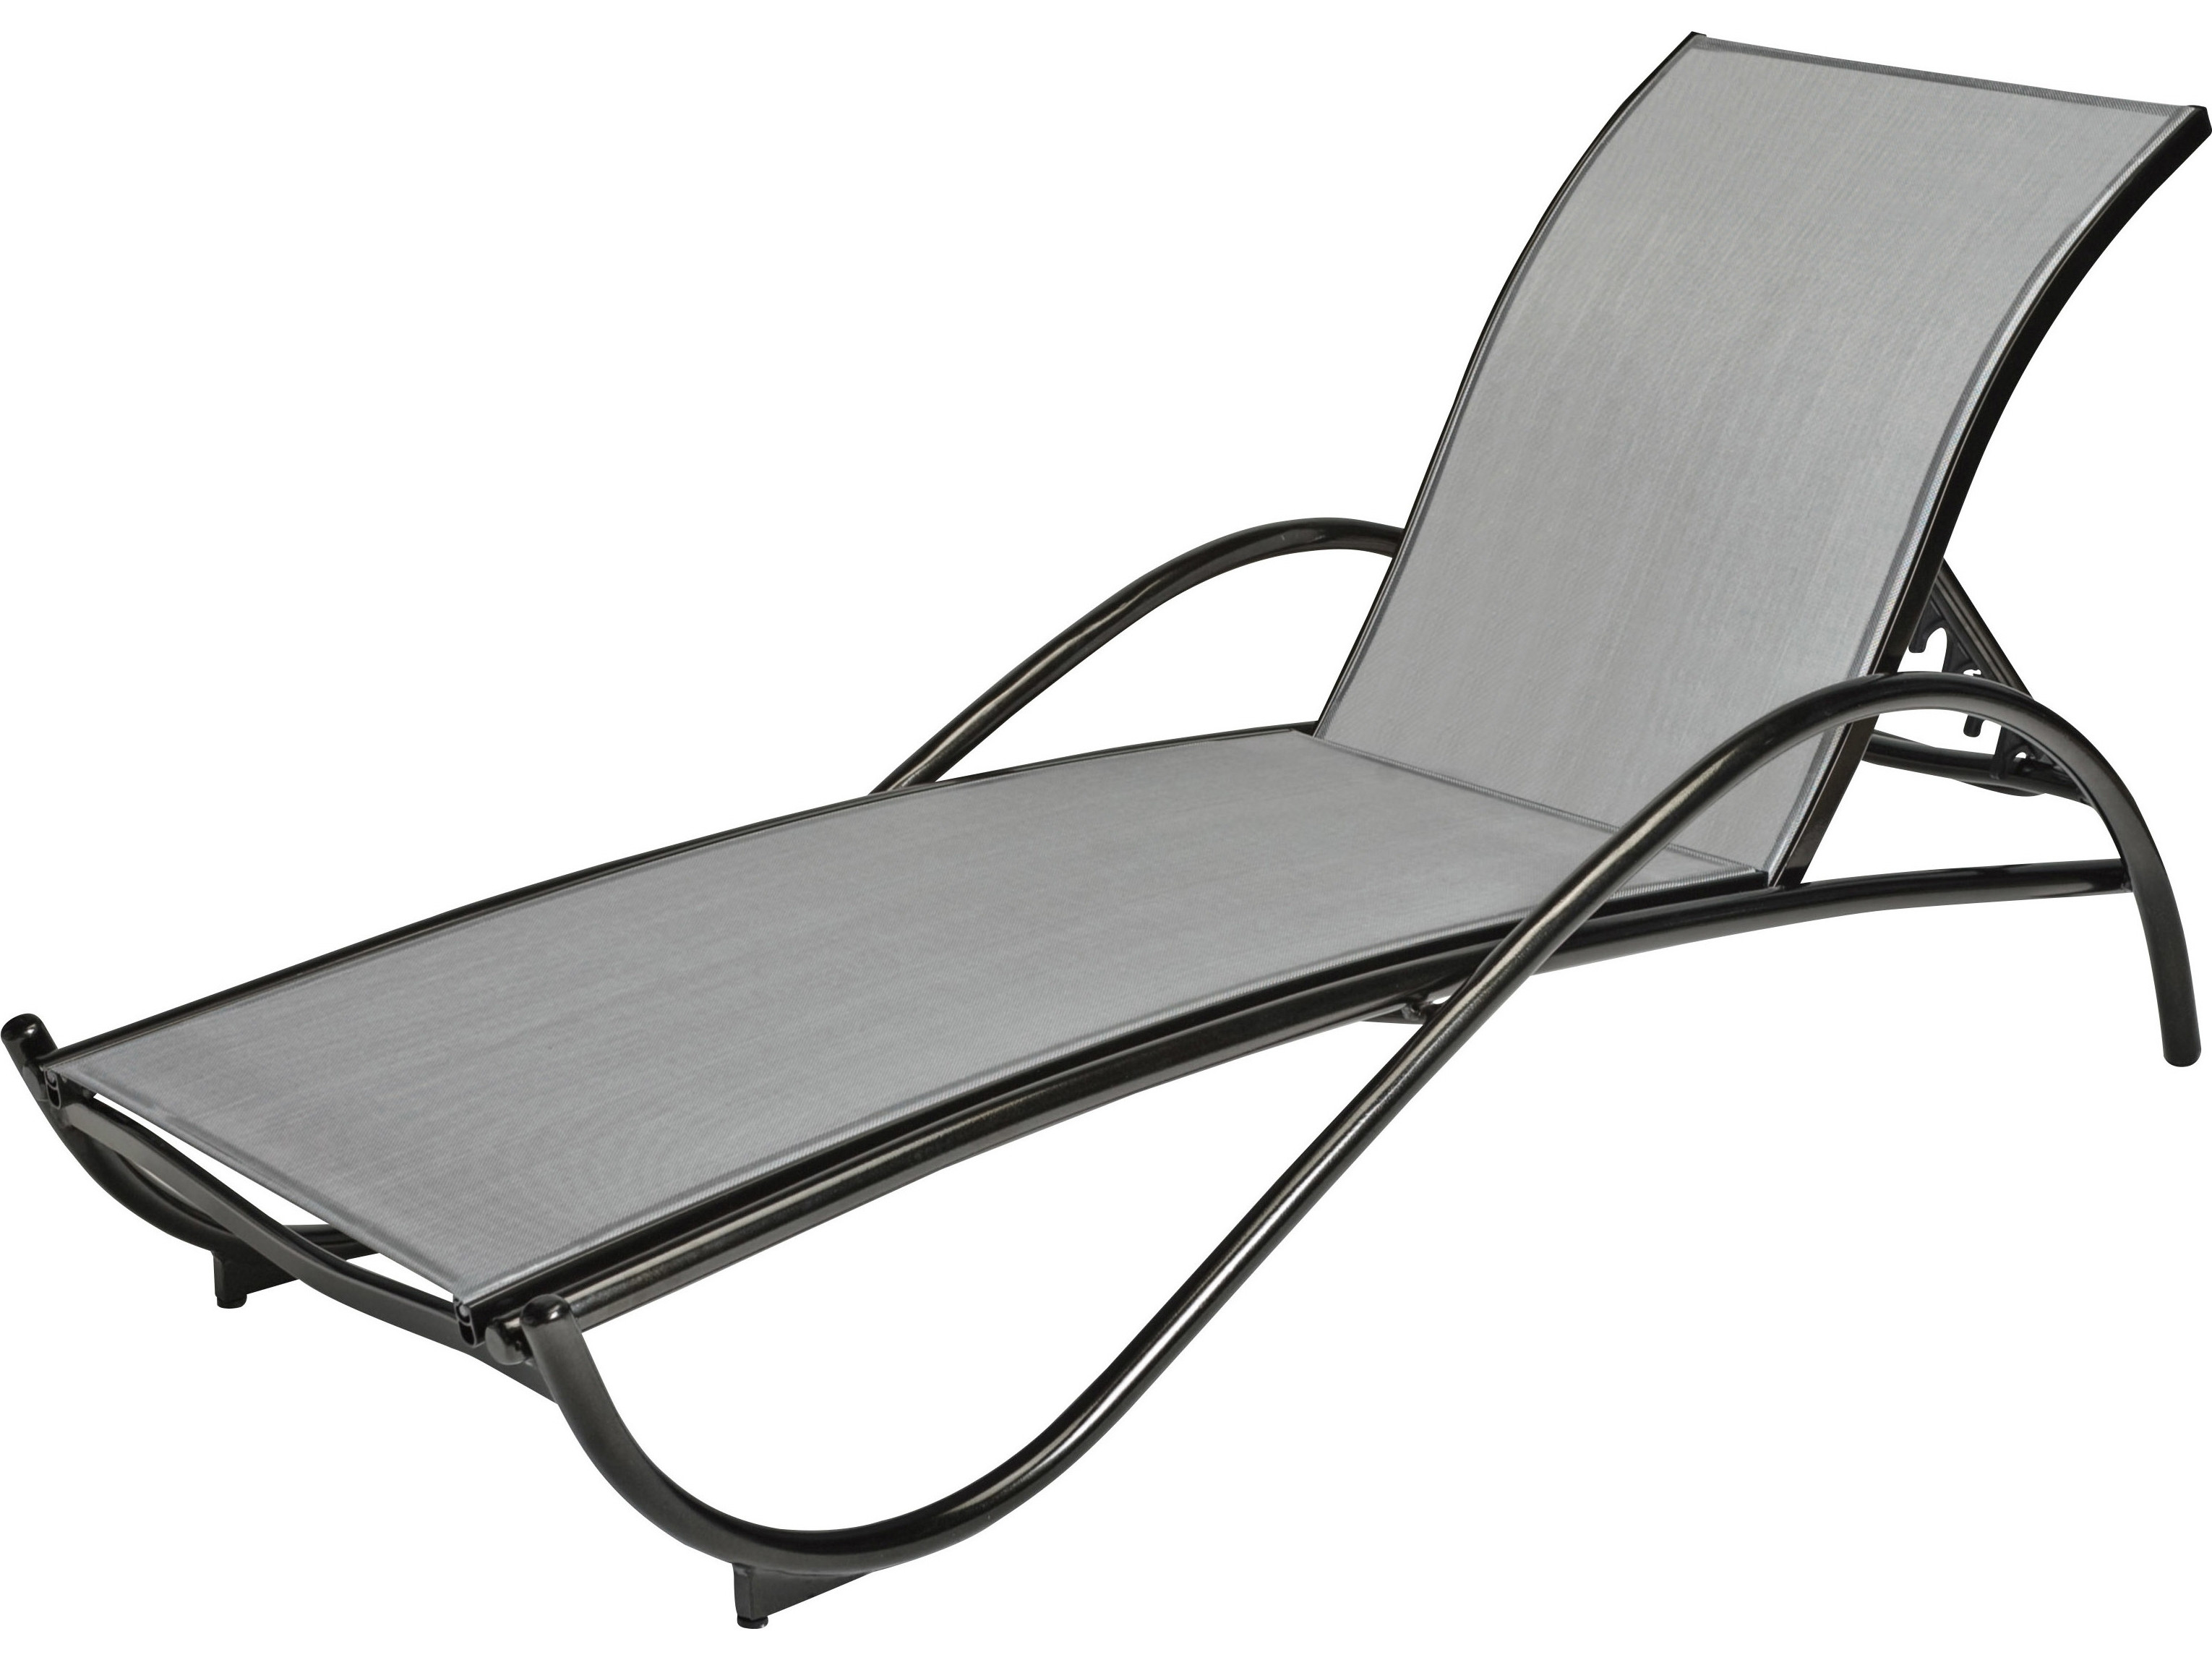 Picture 4 Of 38 – Lounge Outdoor Chairs Elegant Woodard Tribeca Regarding Latest Outdoor Chaise Lounge Chairs With Arms (View 11 of 15)